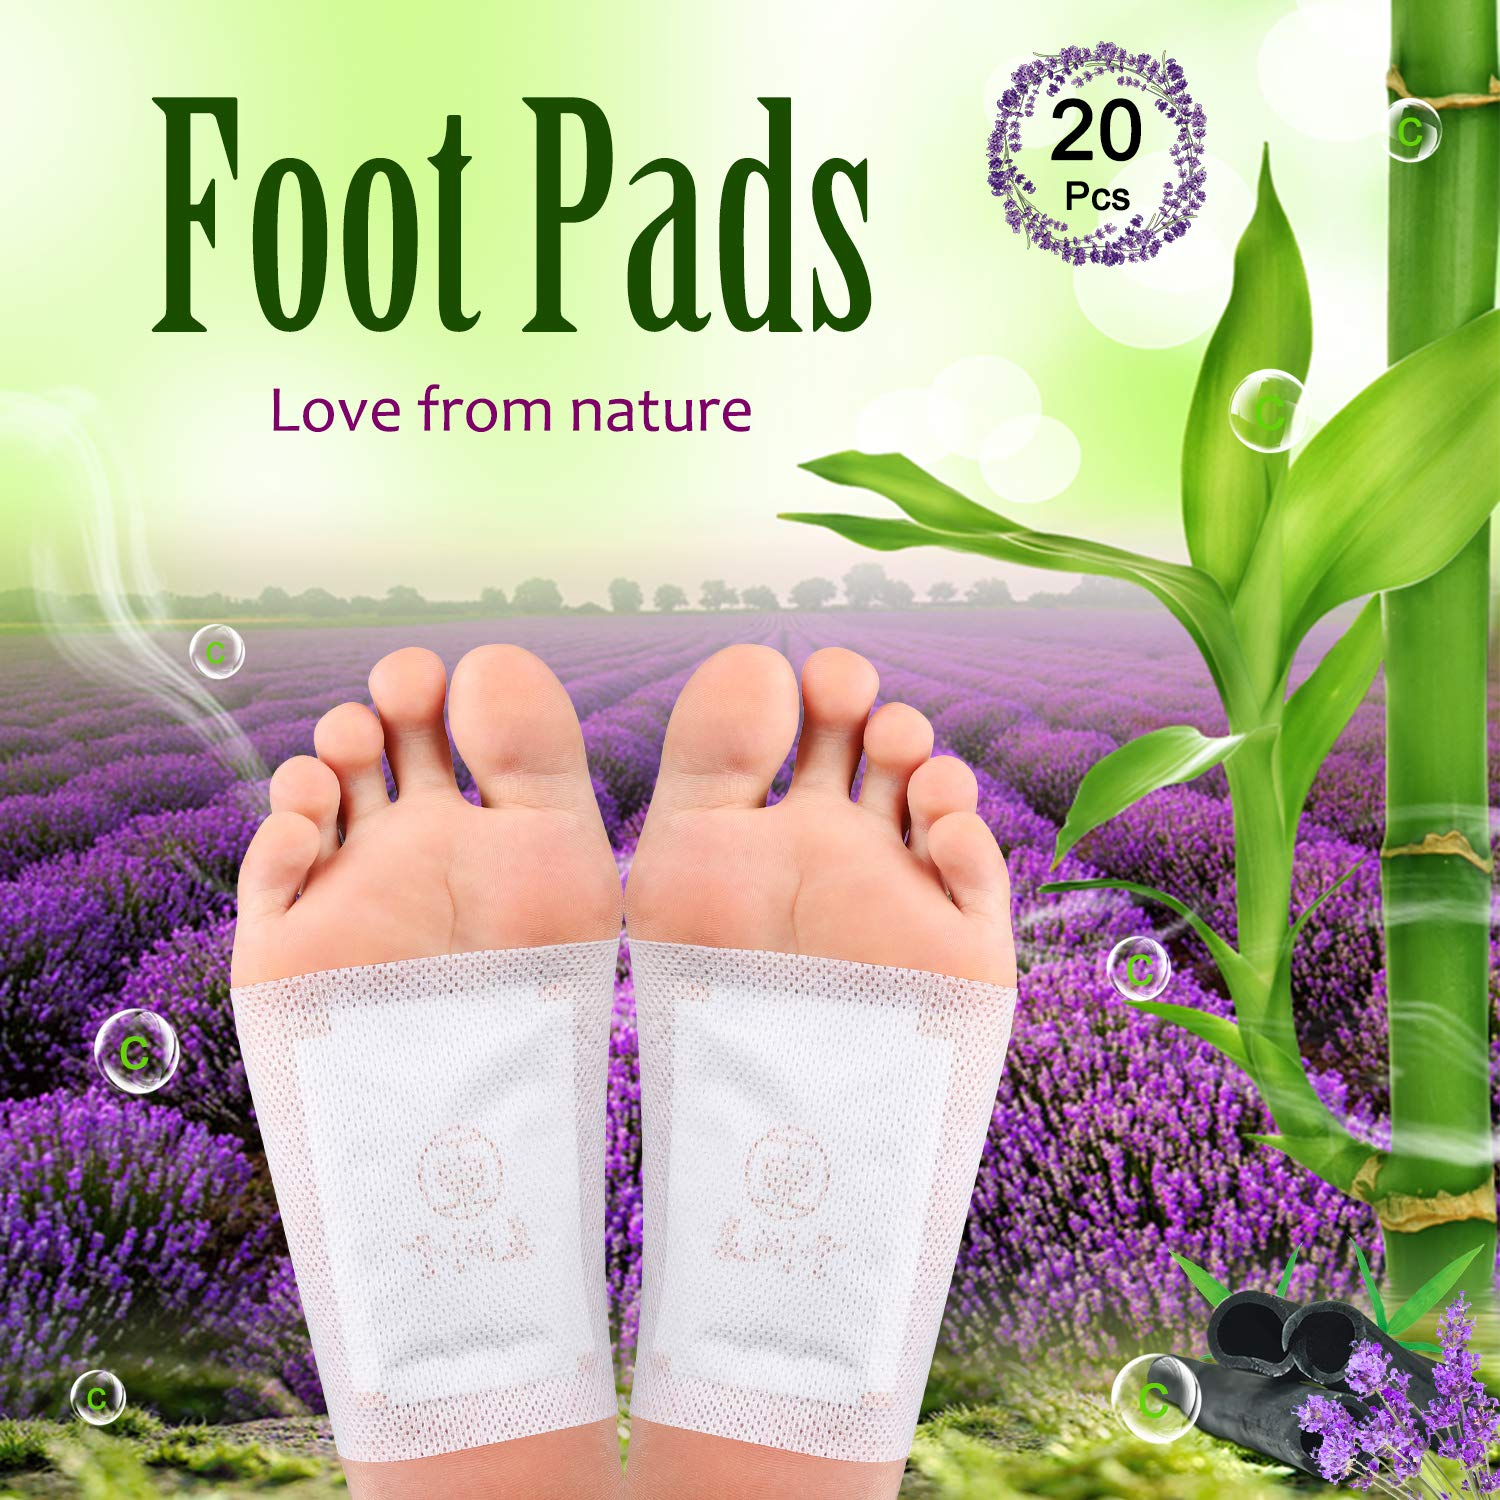 Foot Pads - (20pcs) Natural Plant Foot Care Bamboo and lavender Cleansing Mask Foot Patches For Feet Health Care Organic Sleep Better & Anti-Stress Relief